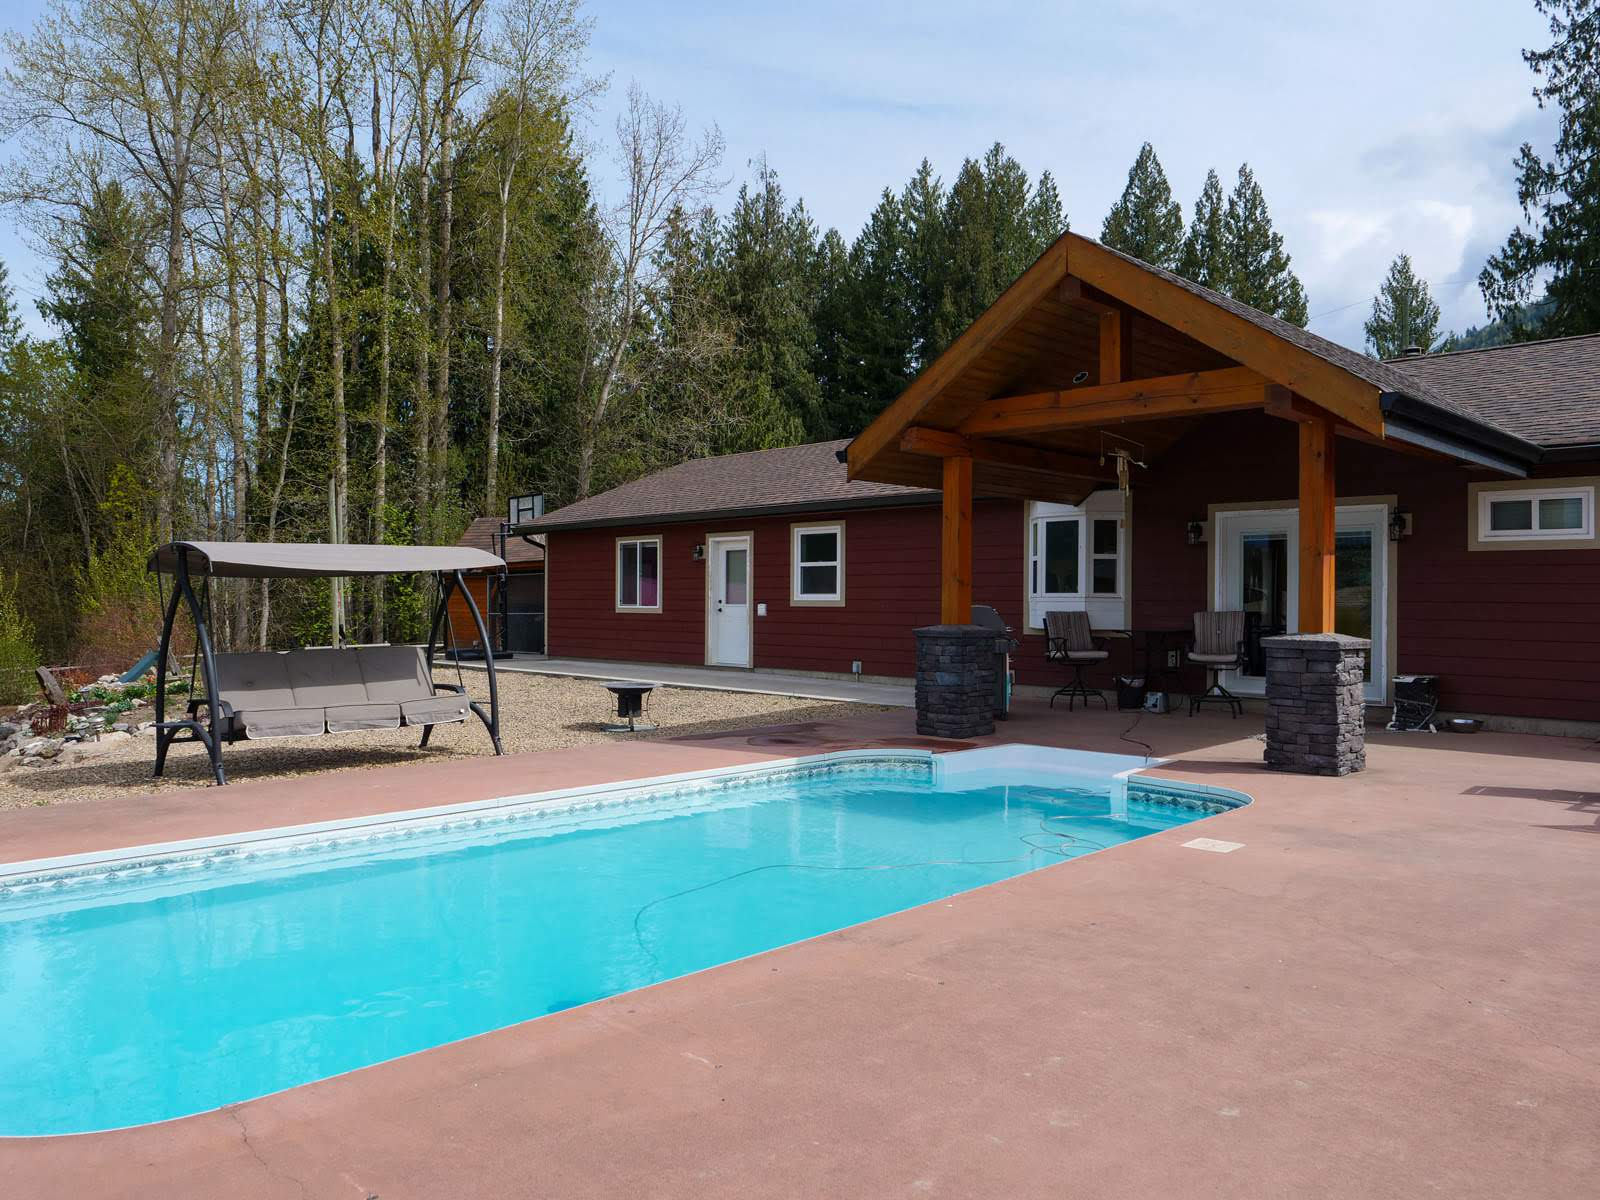 184 Monks Road, Grindrod, British Columbia    - Photo 10 - RP9119050735